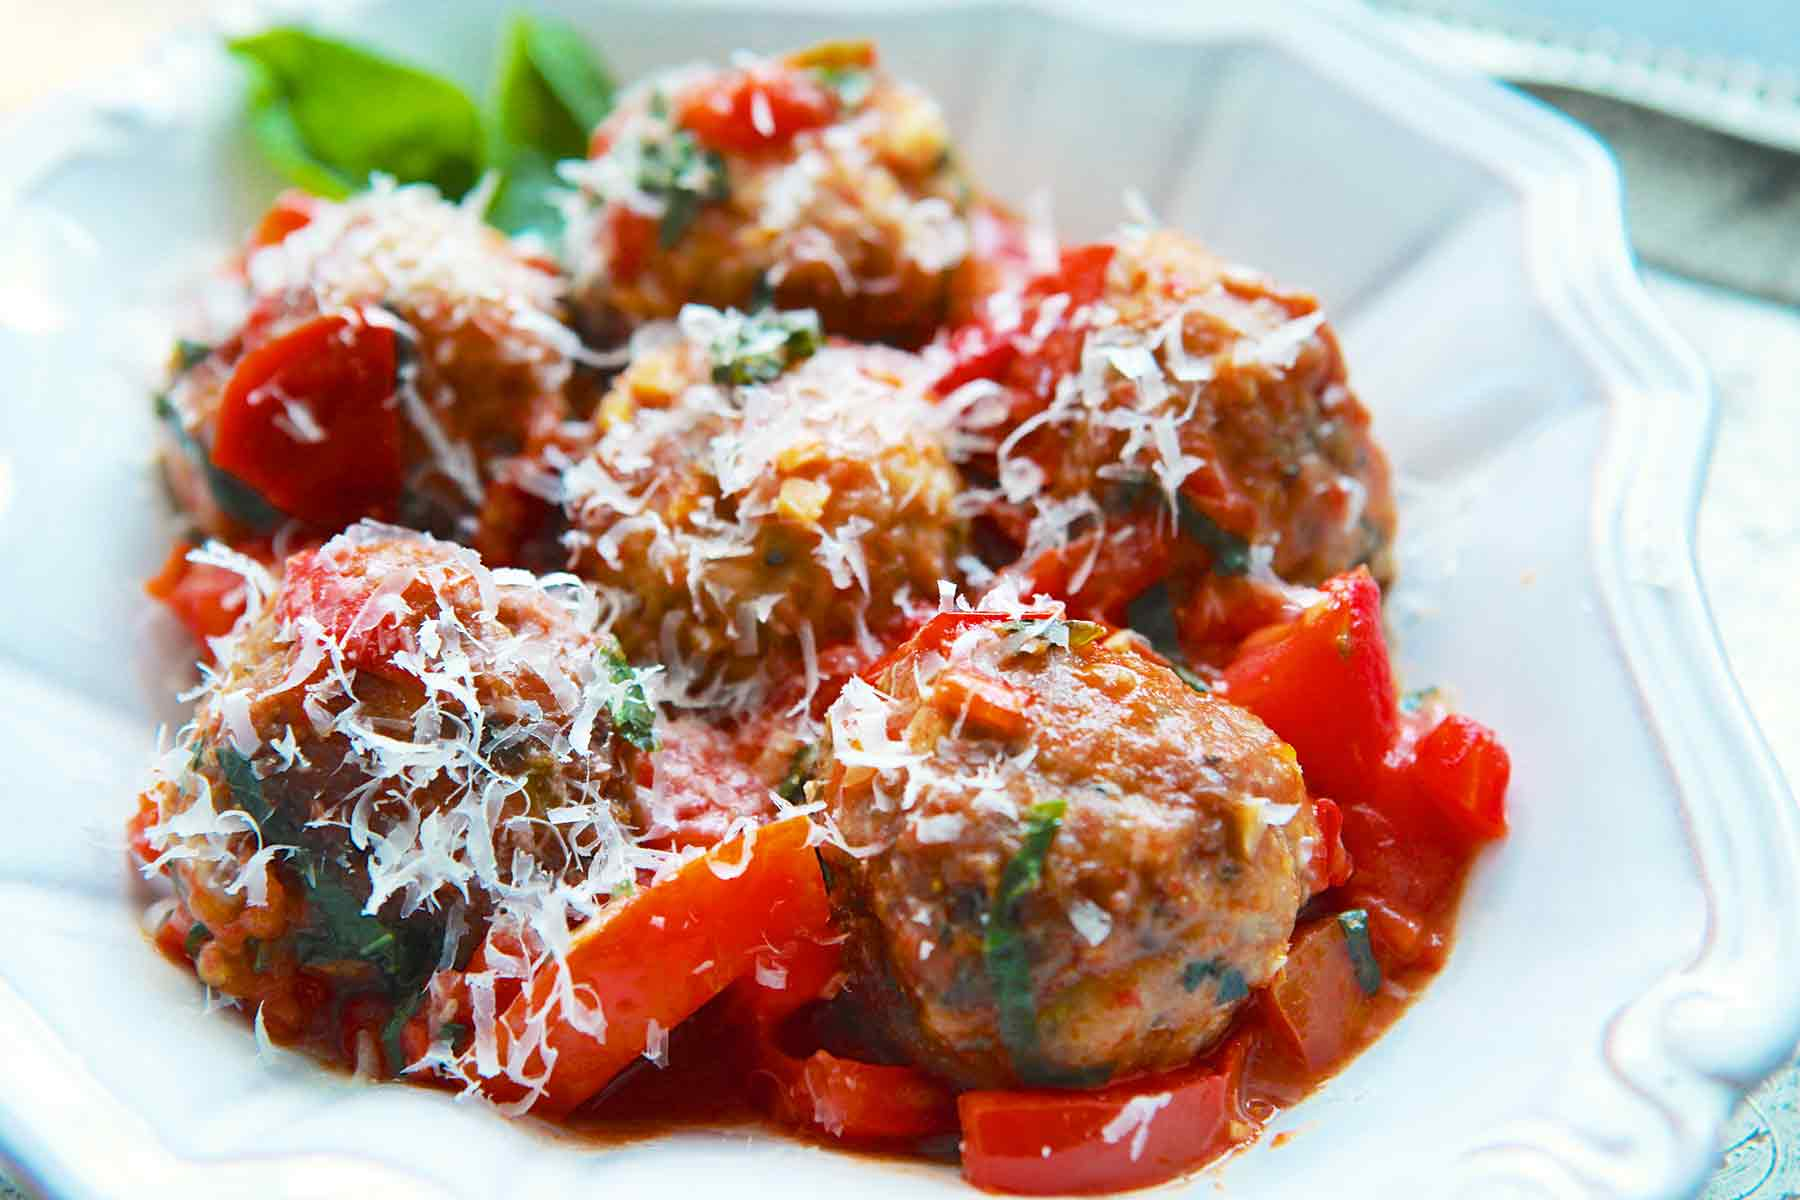 Turkey Meatballs with Tomatoes and Basil